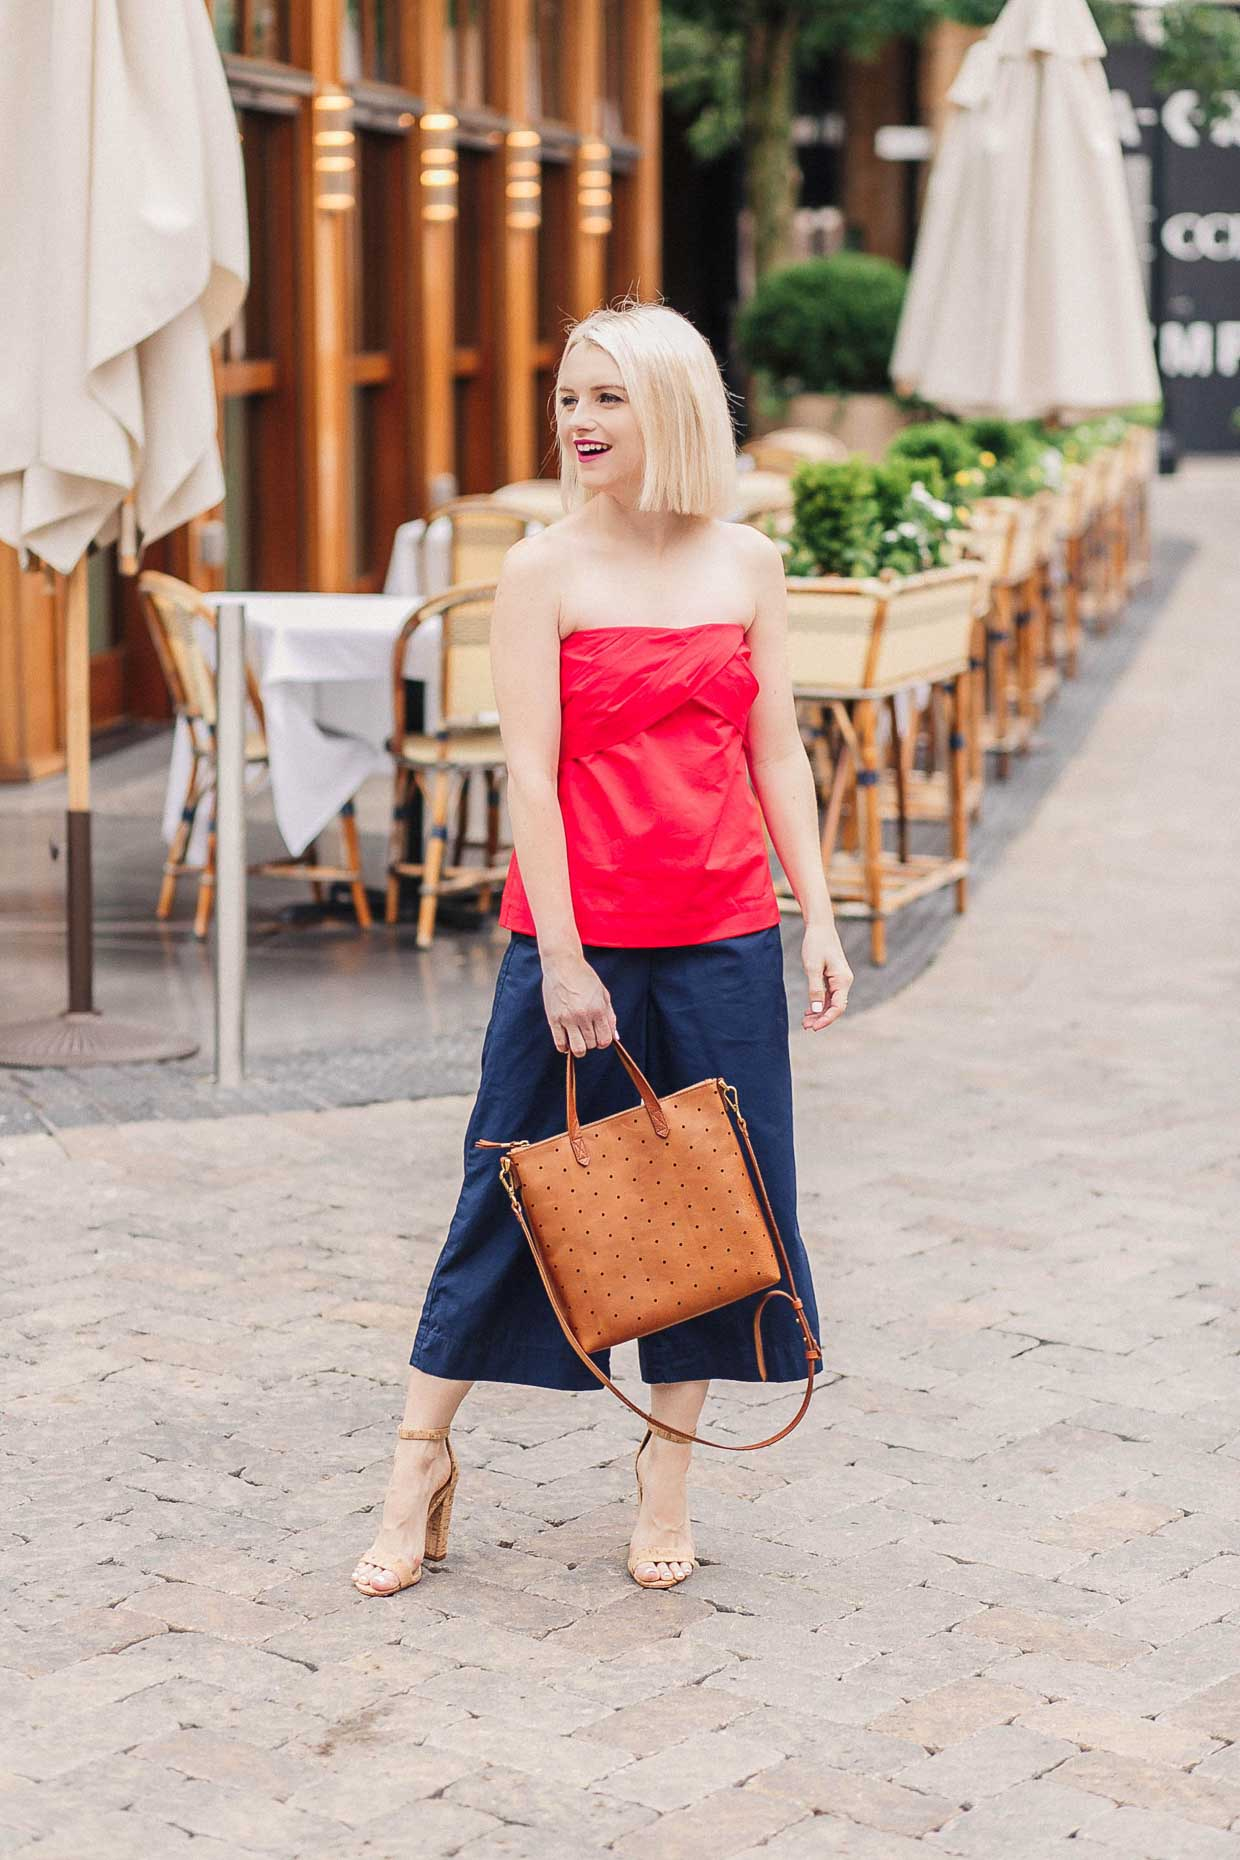 970d0b37c7f How To Style A Red Strapless Top For Summer - Poor Little It Girl